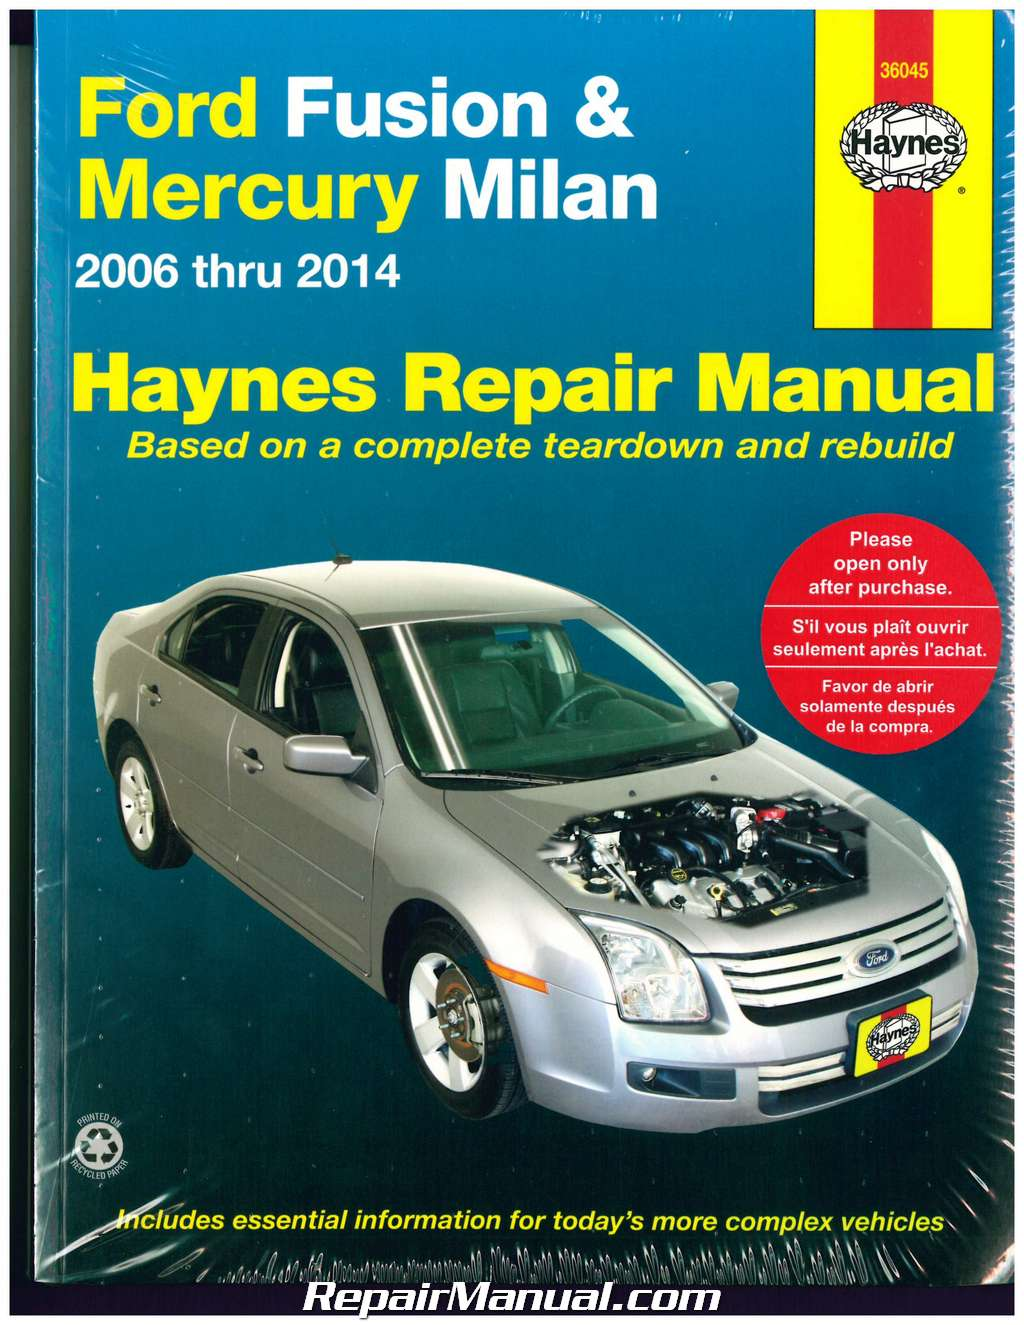 haynes ford fusion 2006-2014 mercury milan 2006-2011 auto repair manual